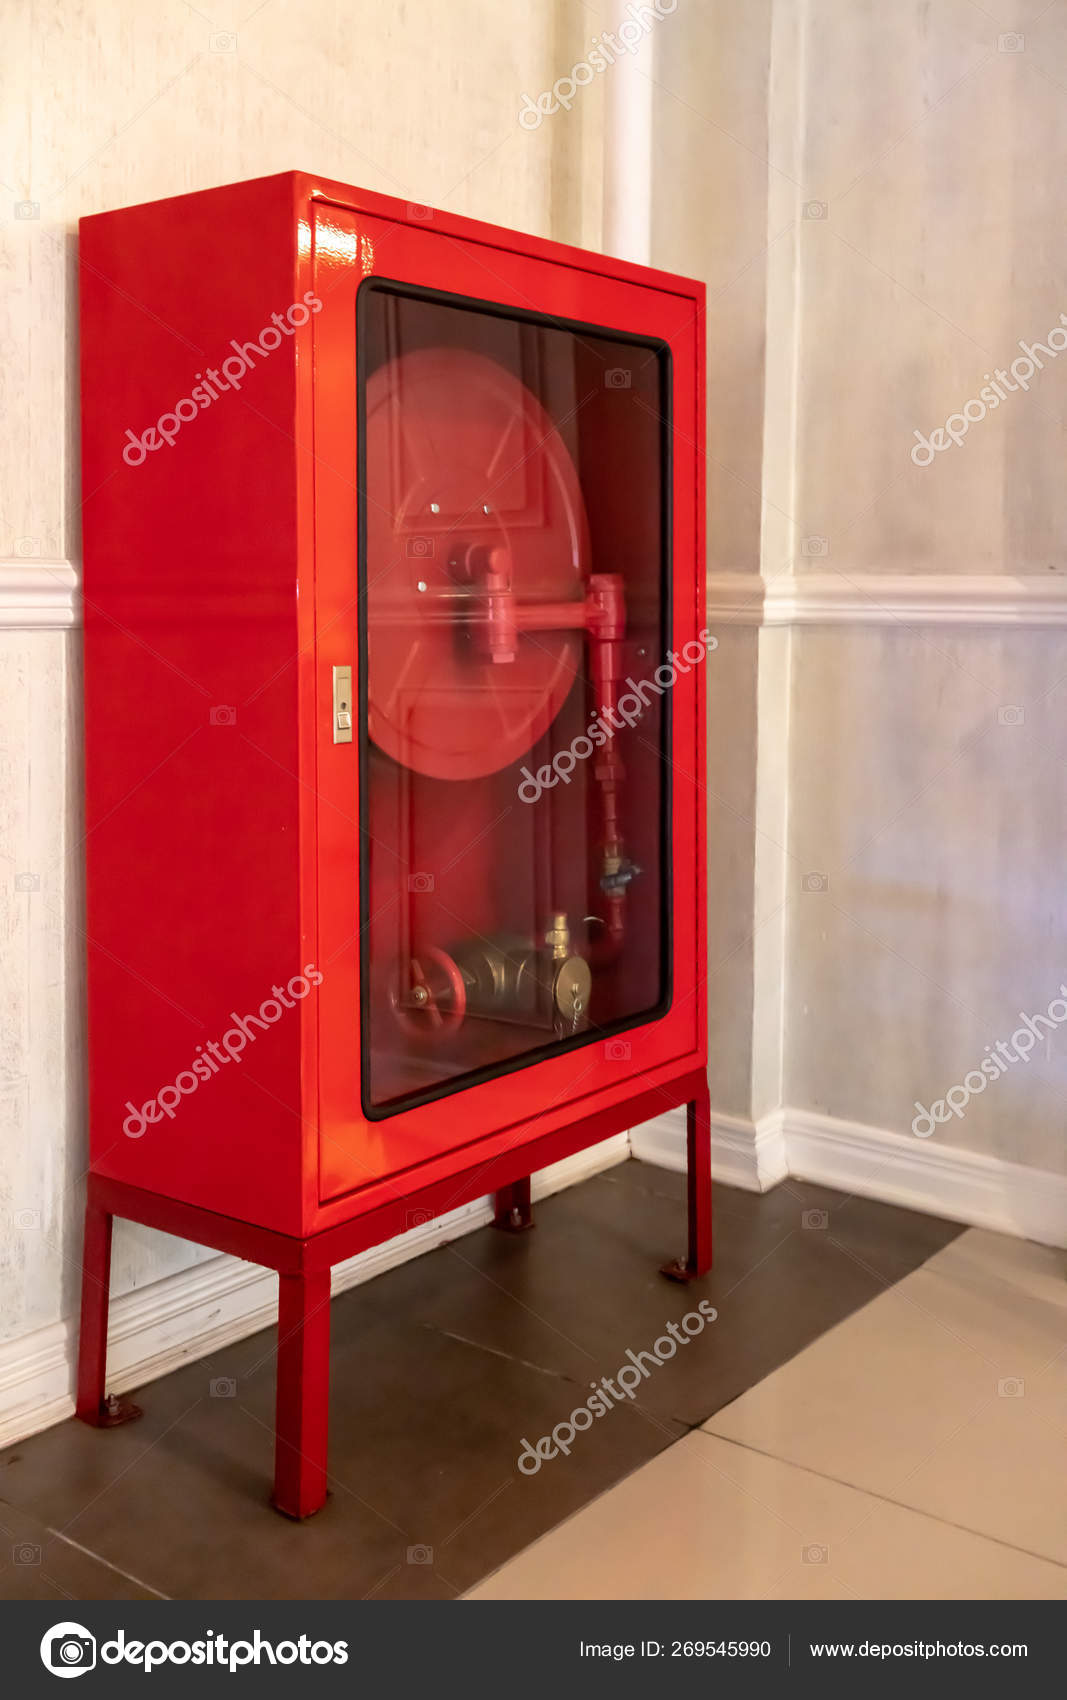 Red Fire Hose Cabinet On Brown Tile Floor Against White Wall Stock Photo C V74 269545990